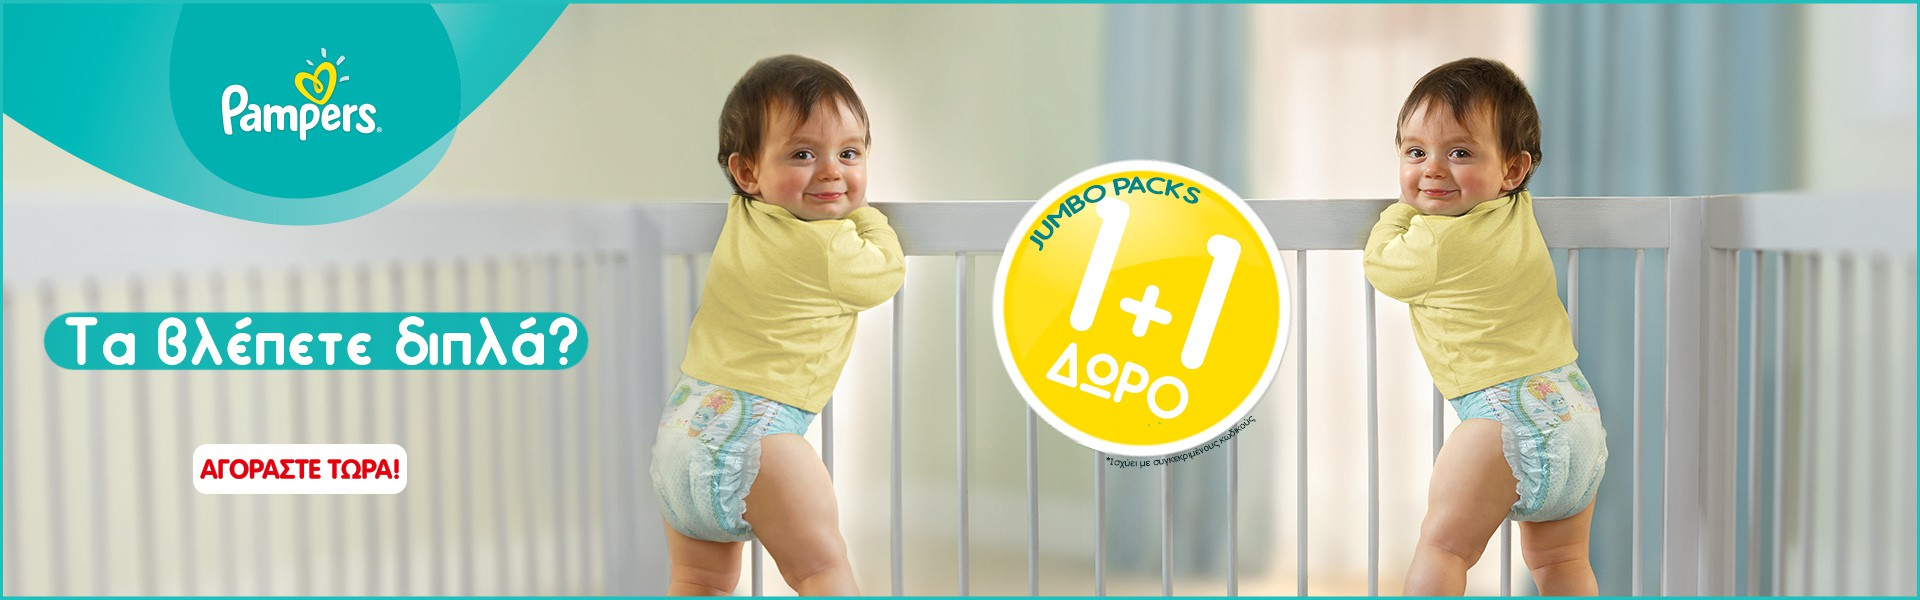 Pampers 1 1 banner1920 d